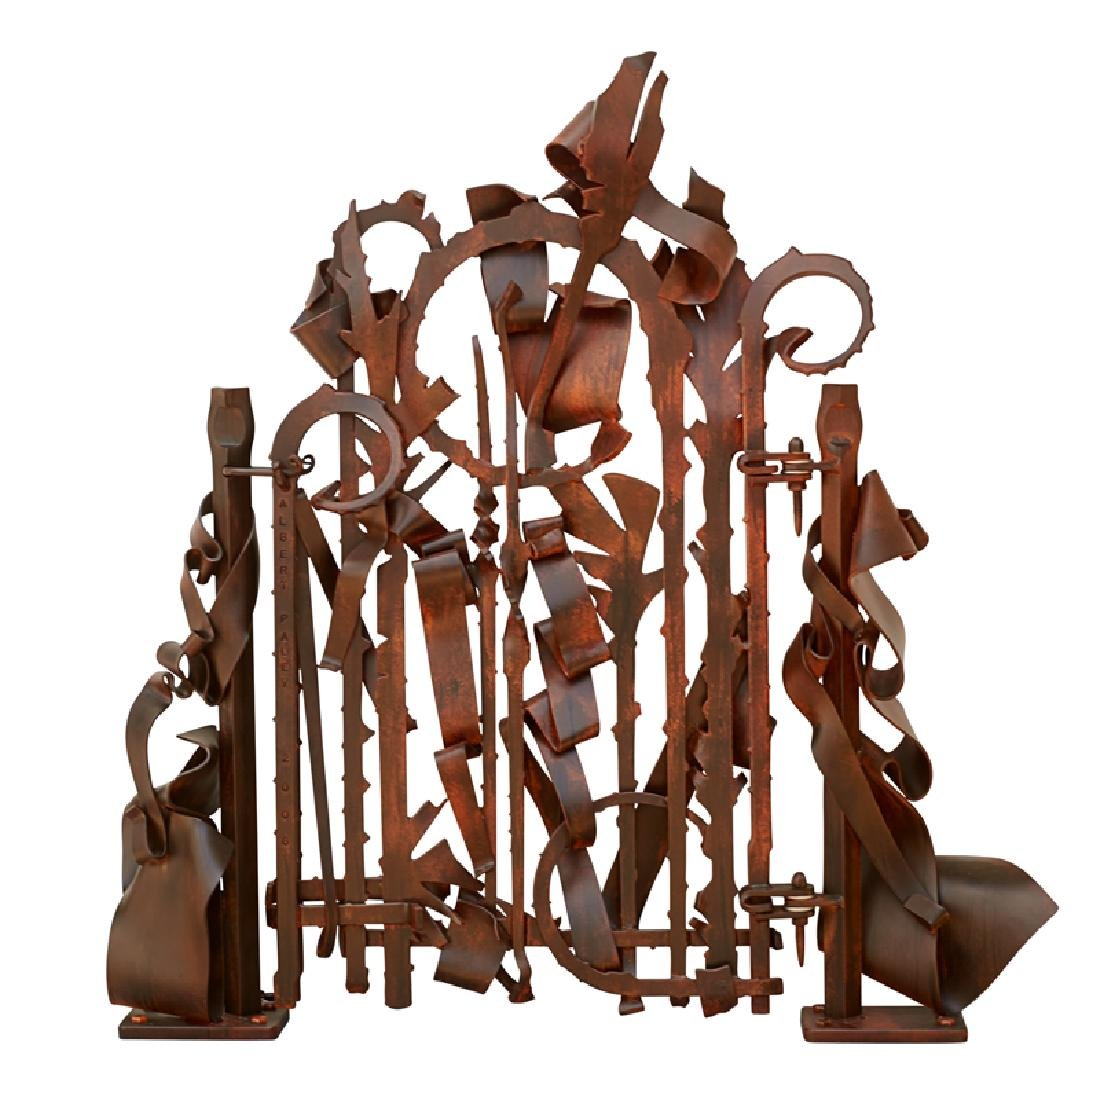 ALBERT PALEY Untitled (Garden Gate)